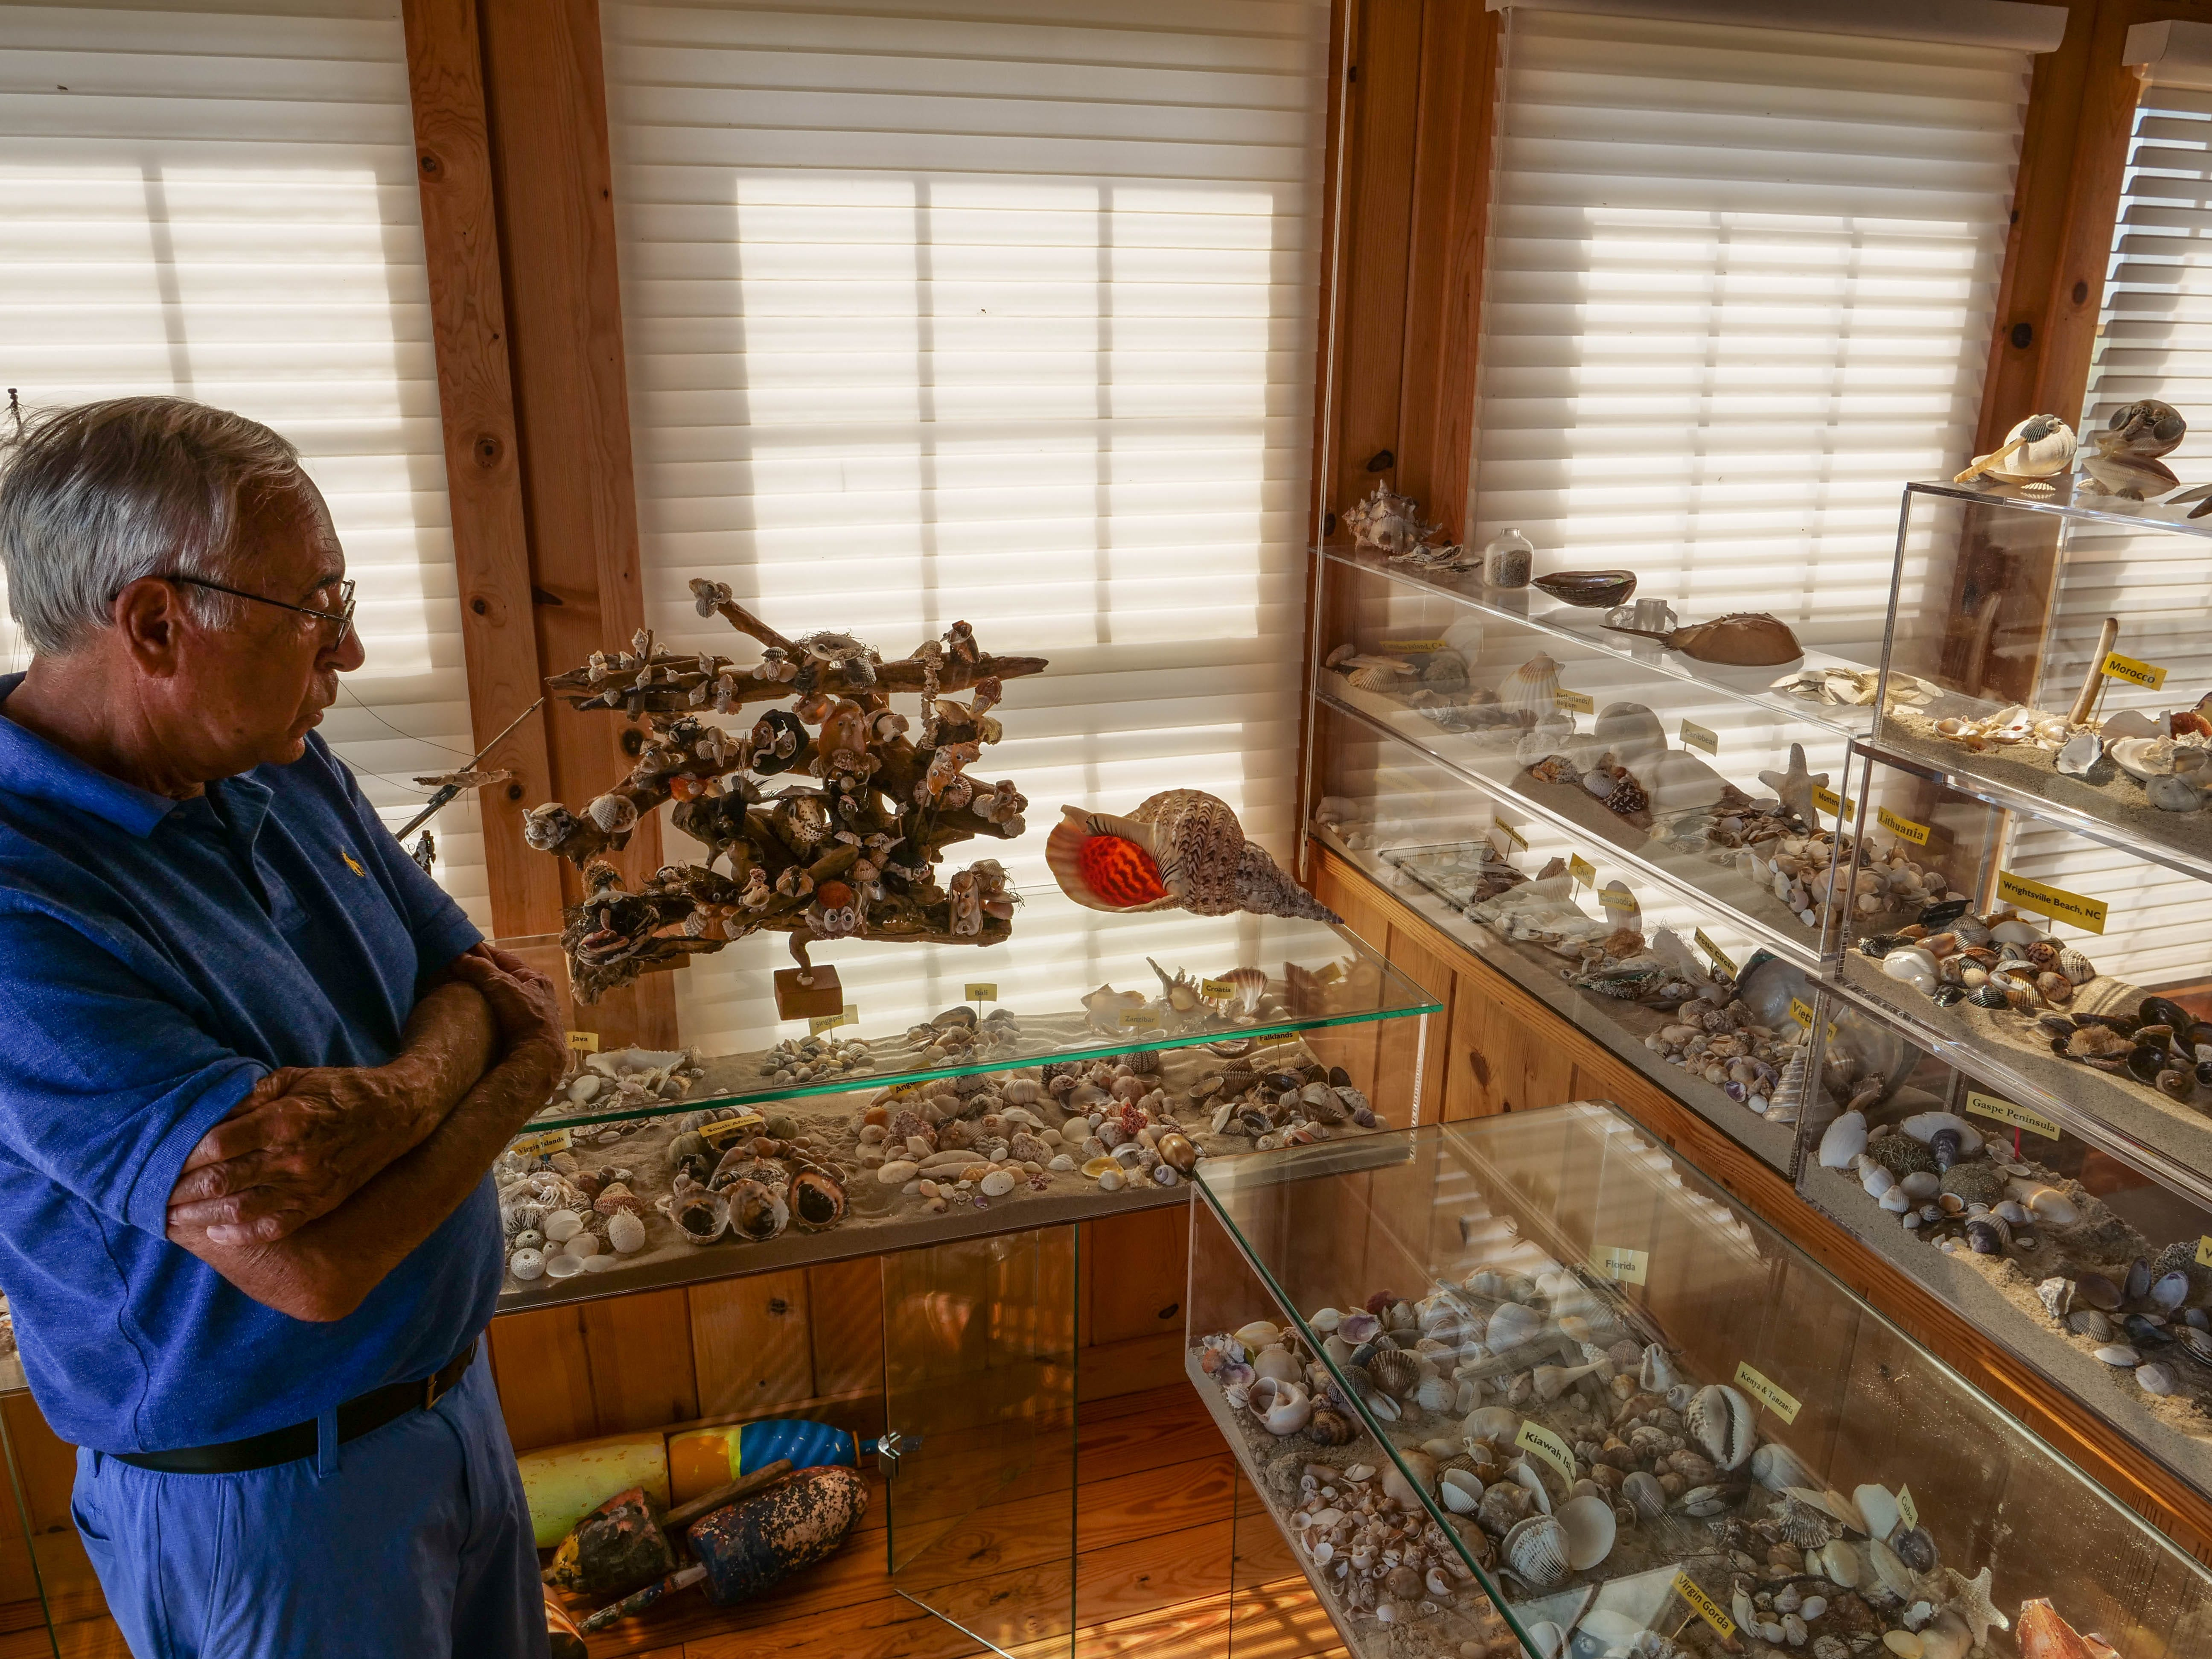 Larry Mann said he has collected over one million seashells in his life.